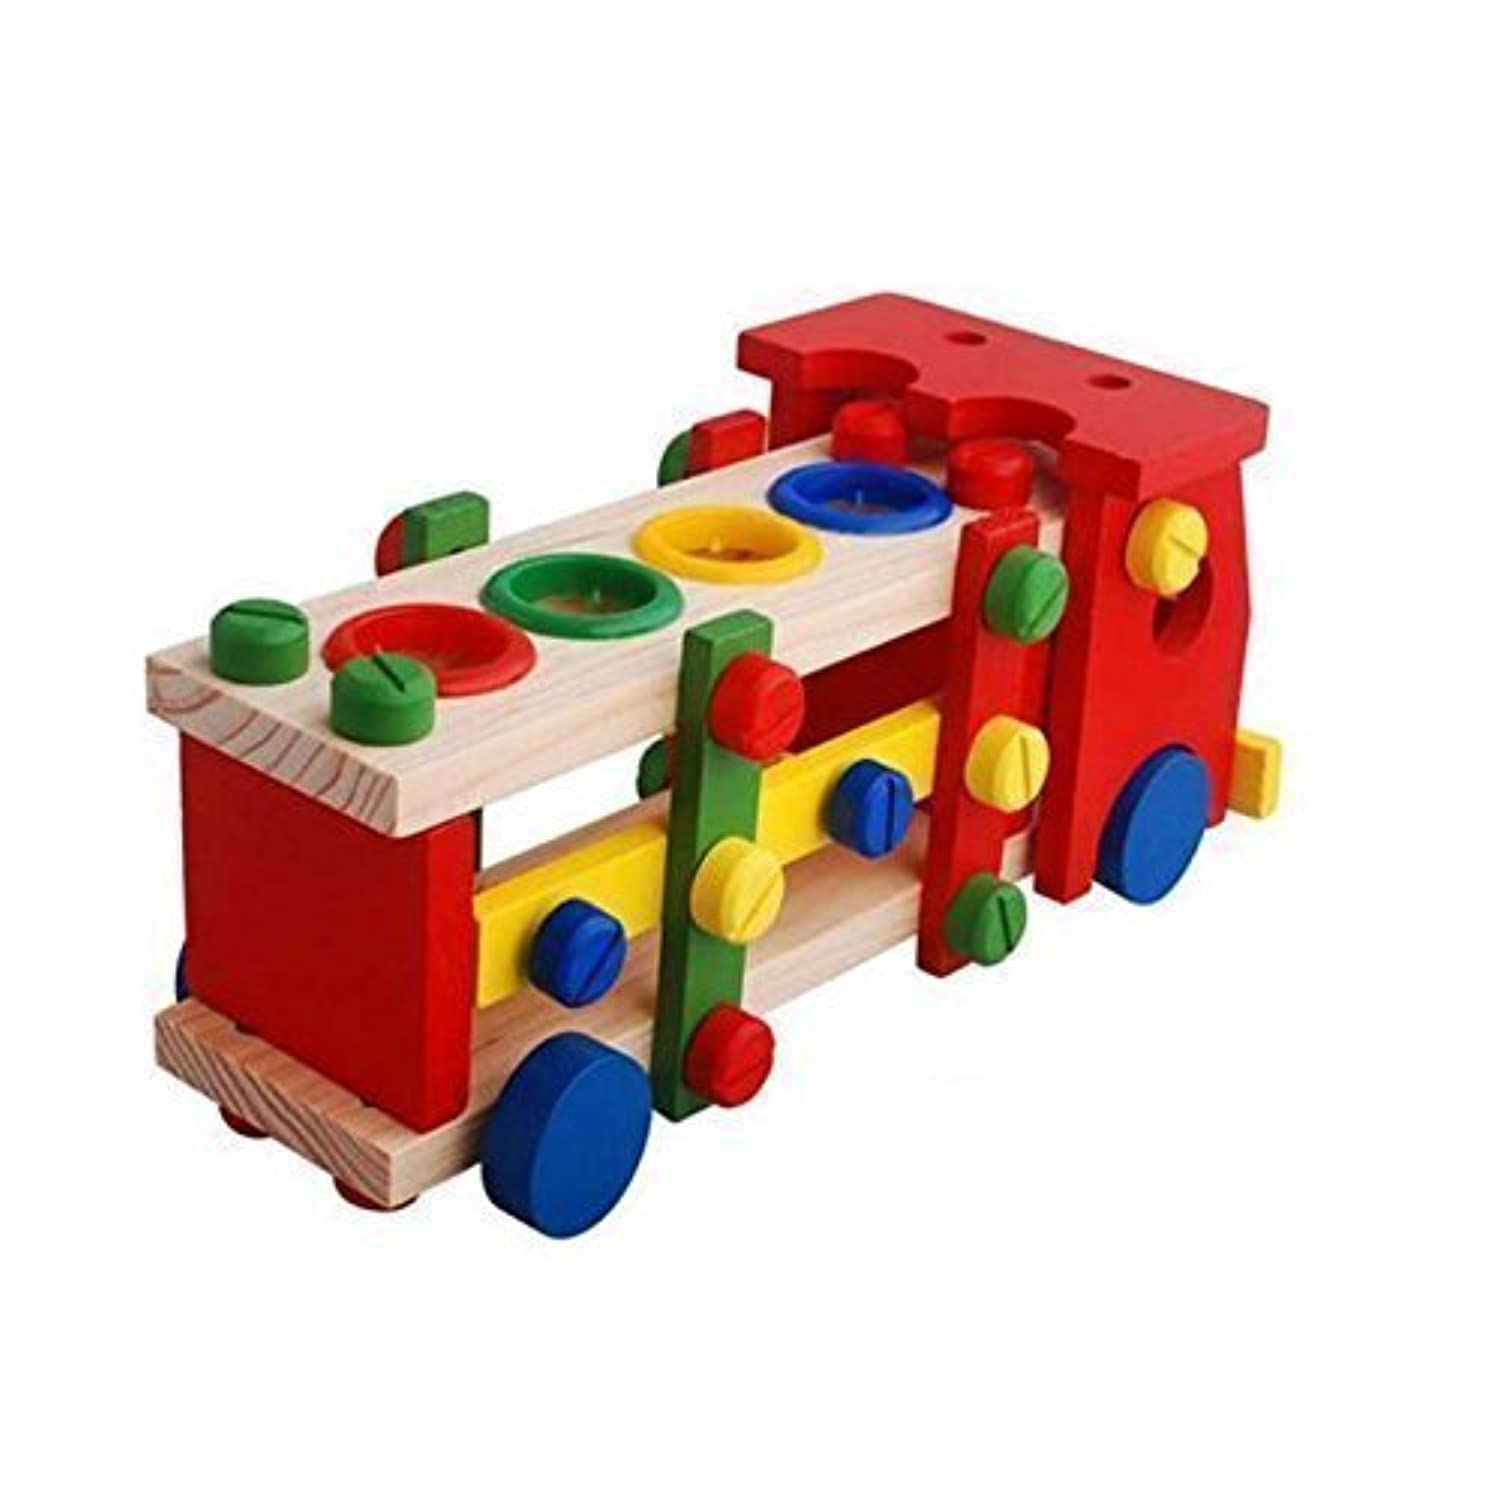 High Grade Detachable Assembling Wooden Toys for Kids, Children's Educational Disassembly Truck Playset [並行輸入品]